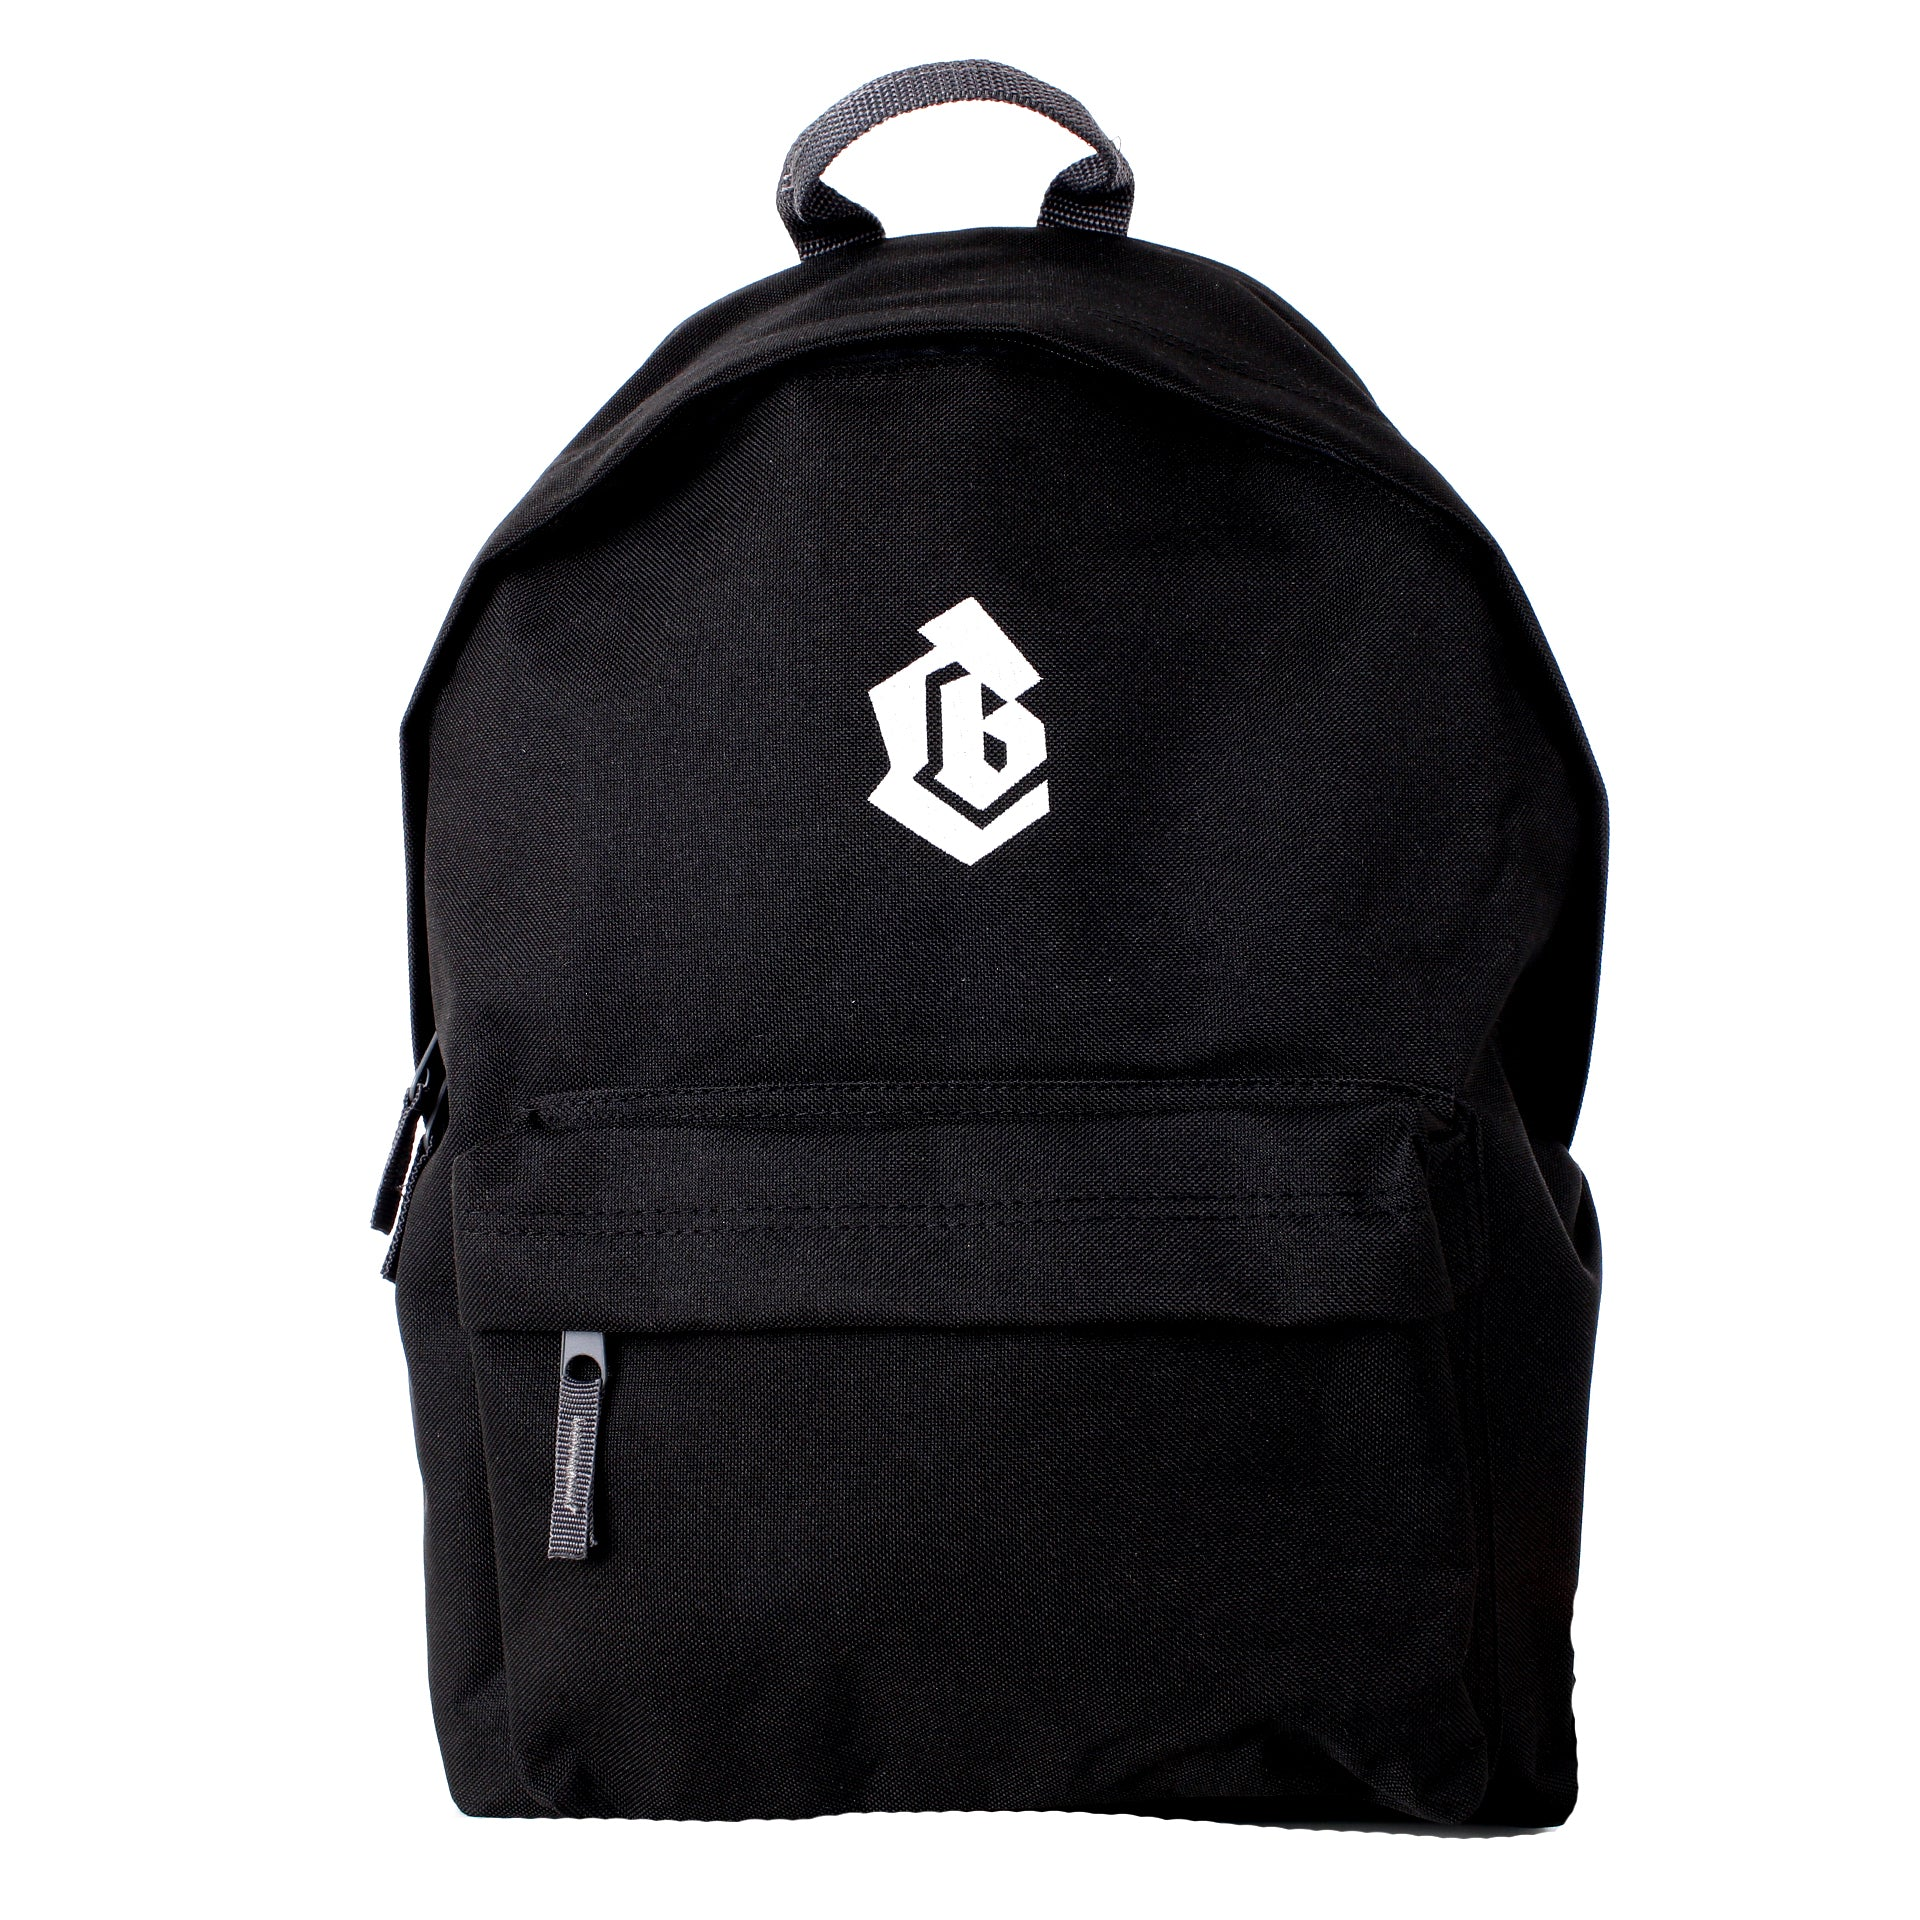 COLLECTIVE BIKES 'LOGO' BACKPACK - BLACK AND WHITE - Collective Bikes